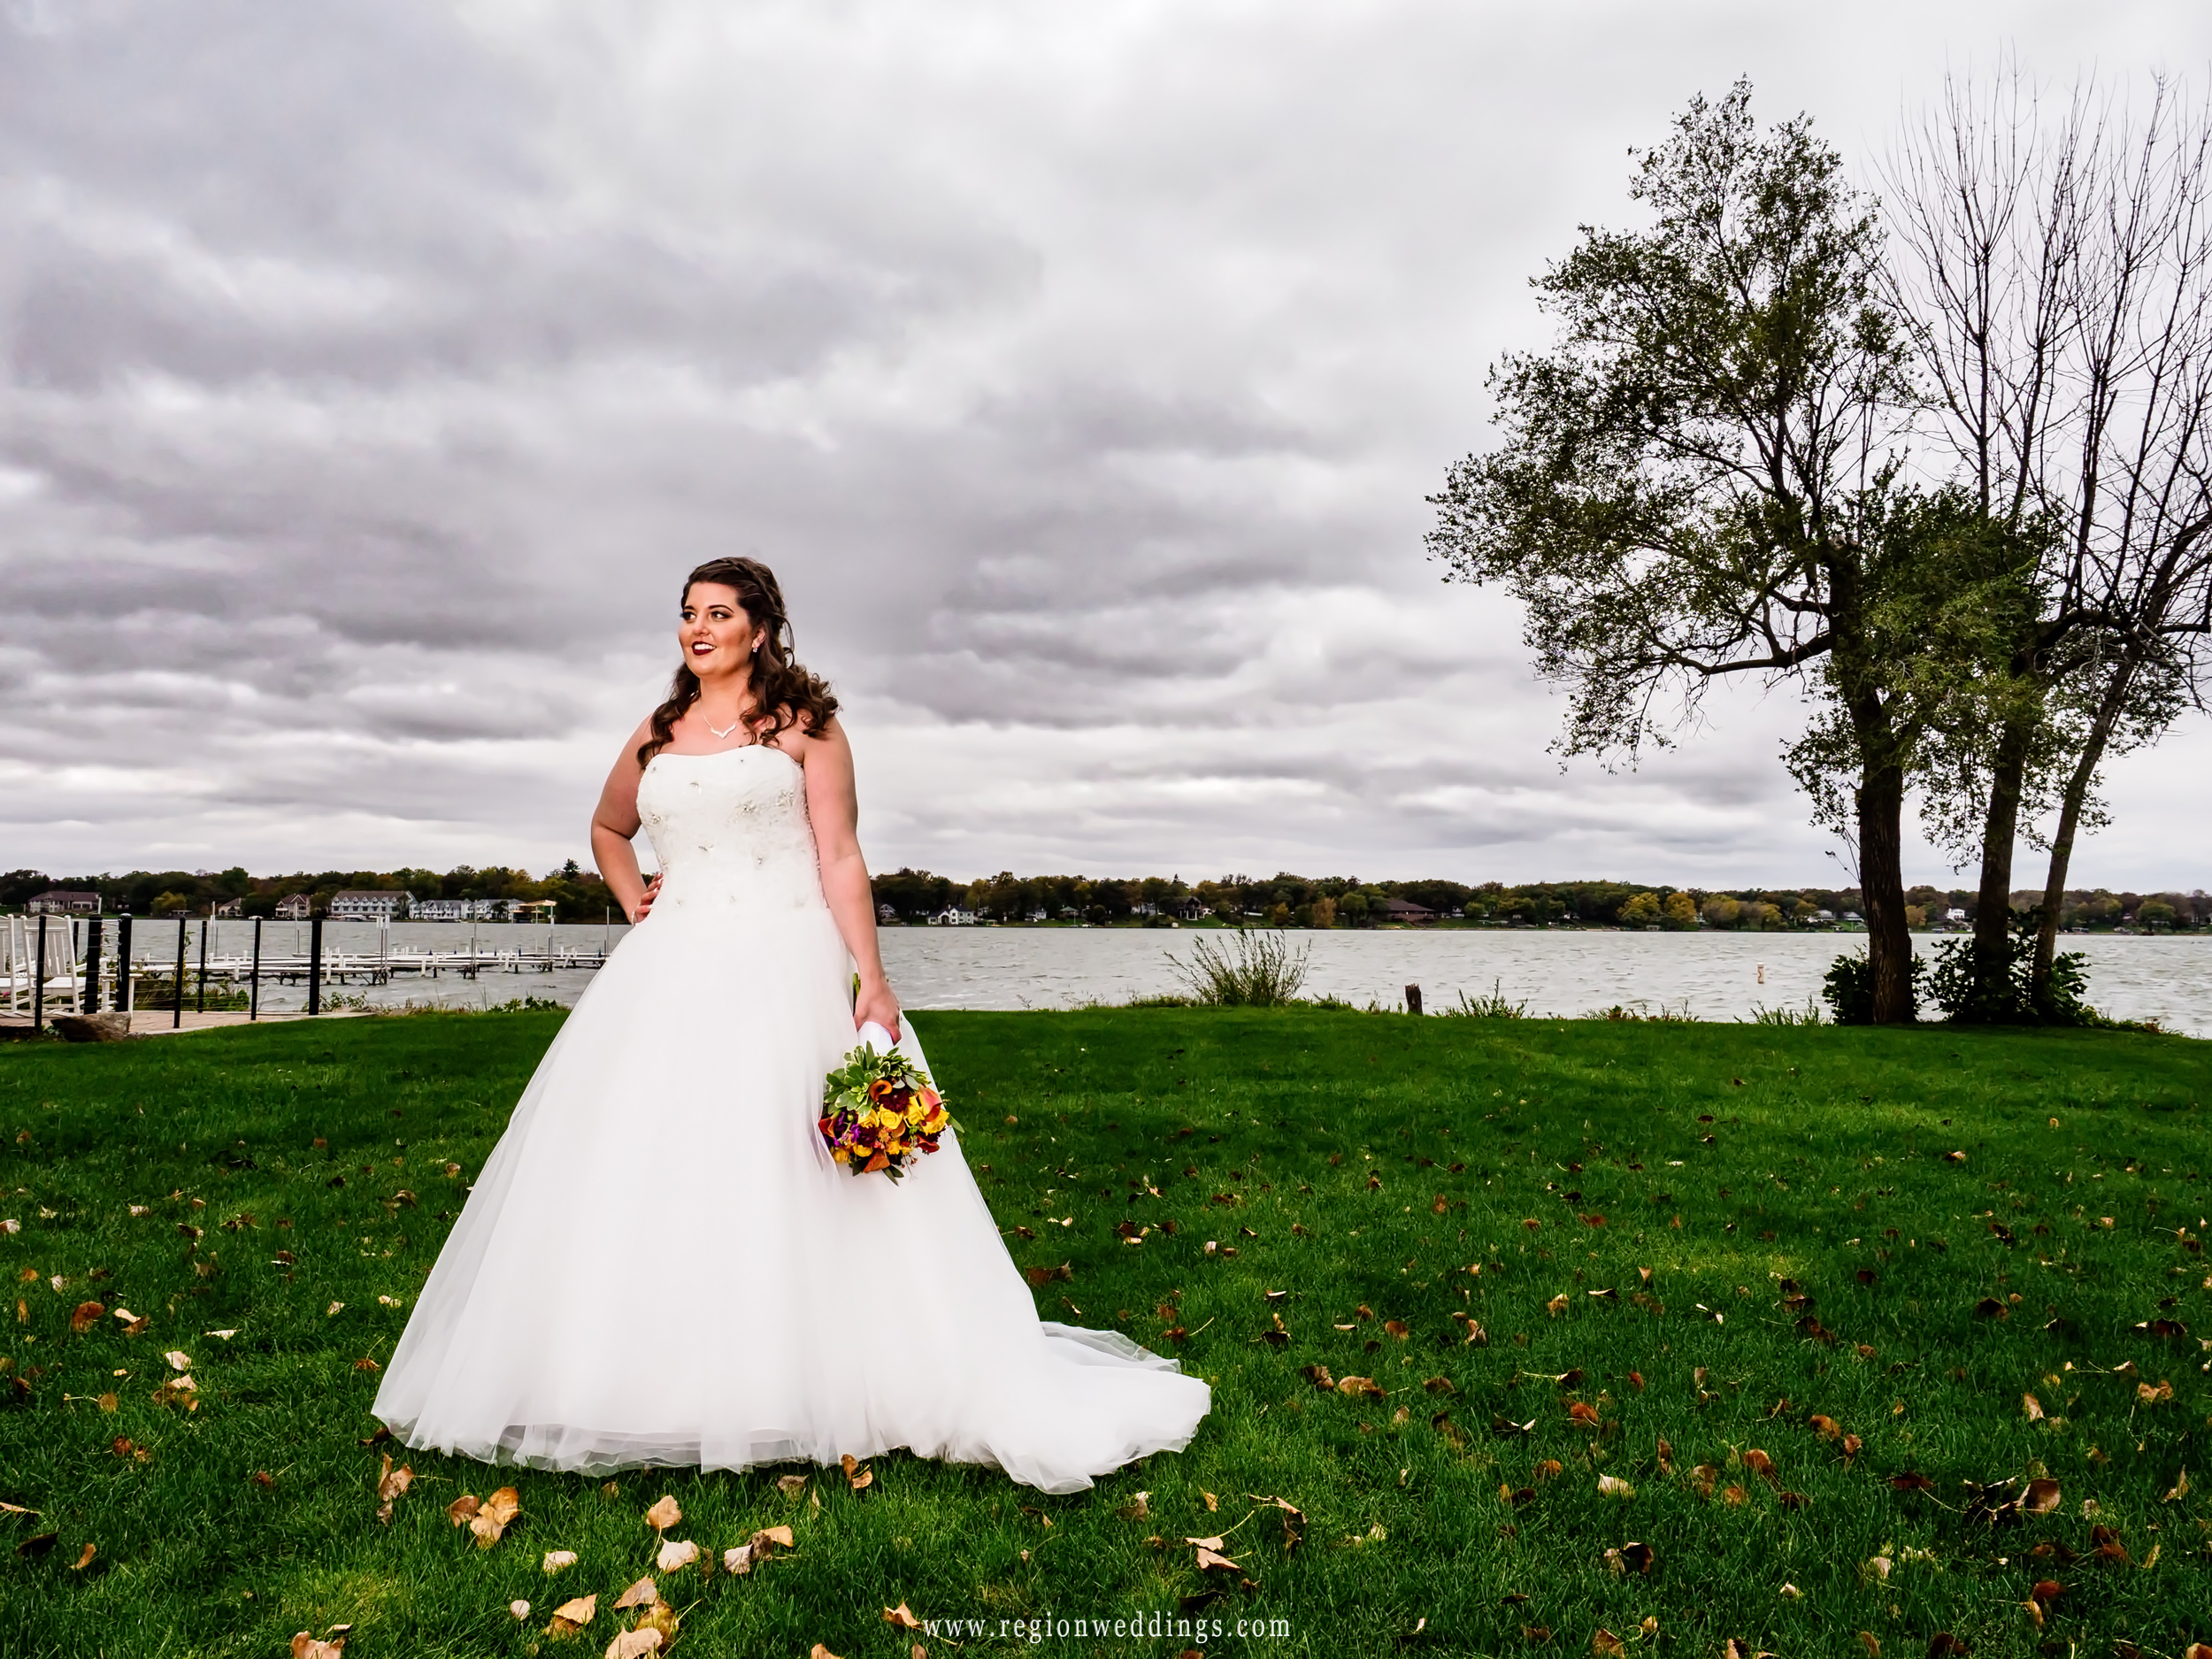 The bride lakeside with storm clouds on the horizon.